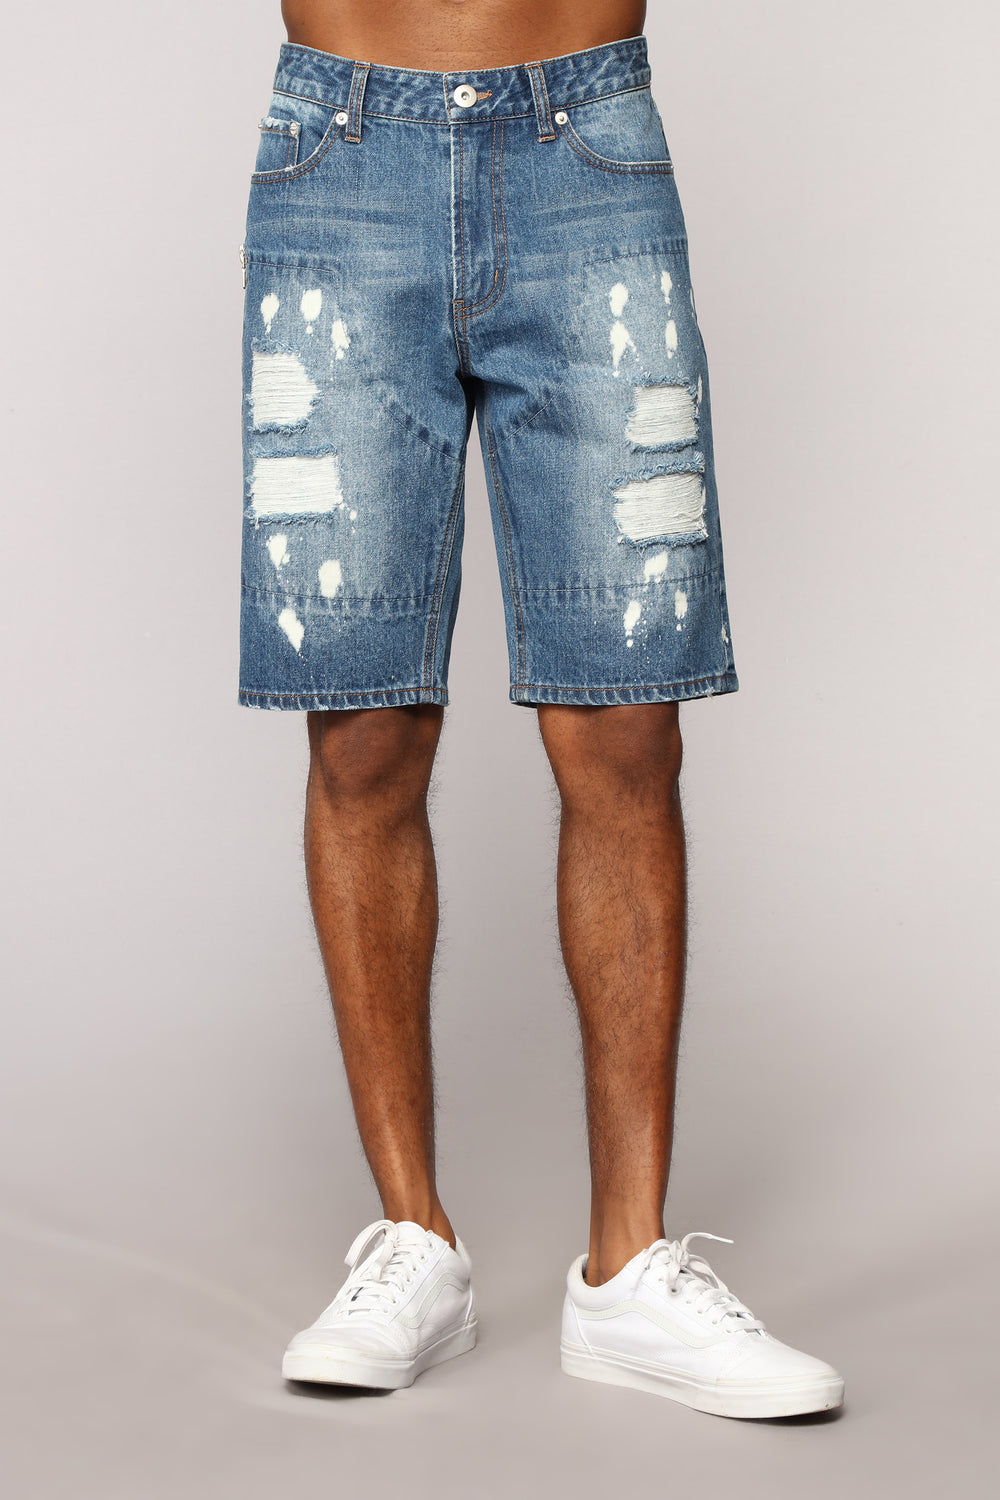 Men's New Mechanic Denim Shorts - Dark Wash